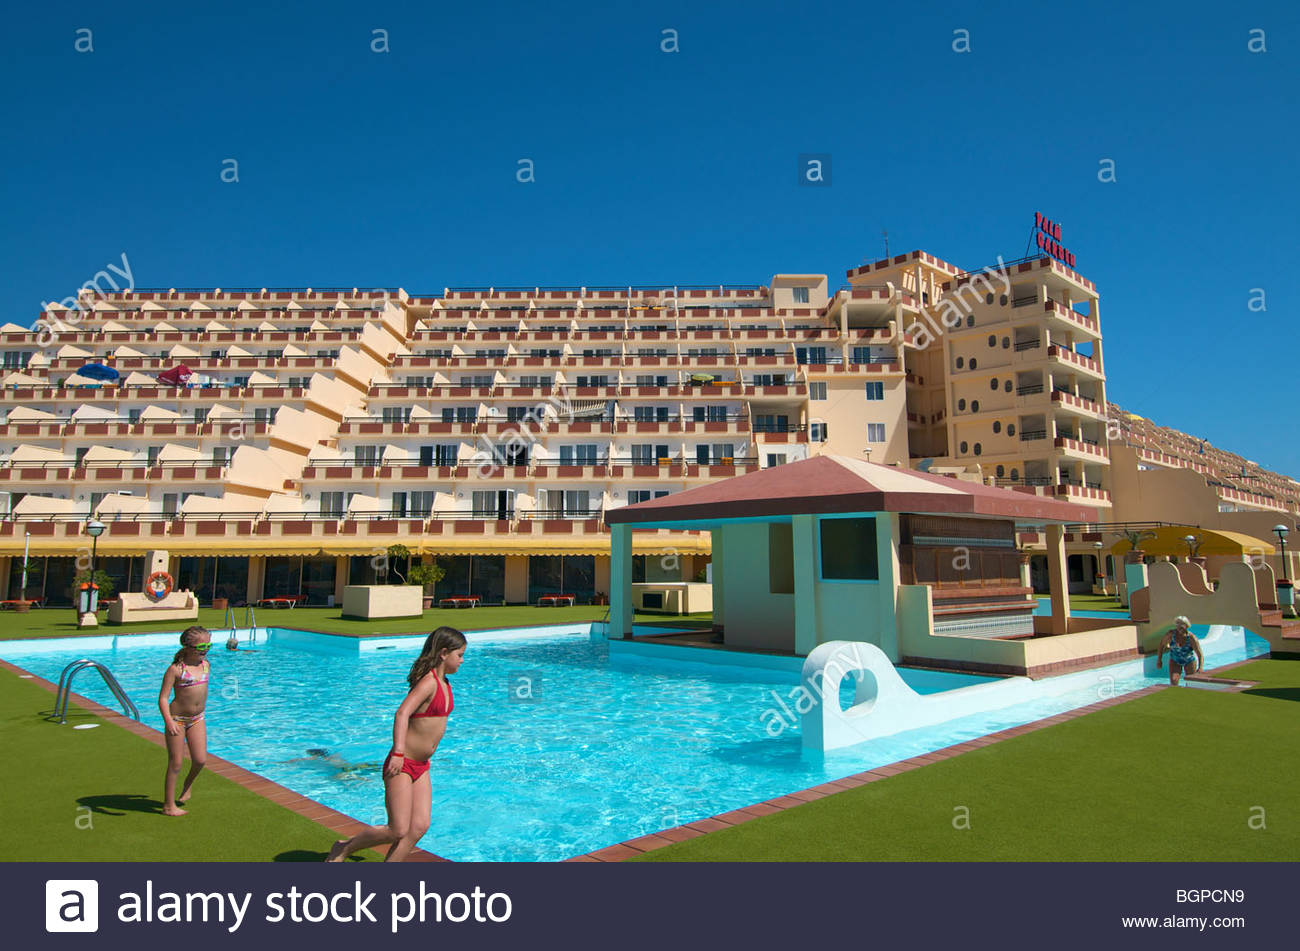 palm garden hotel jandia fuerteventura canary islands spain stock photo 27537813 alamy. Black Bedroom Furniture Sets. Home Design Ideas